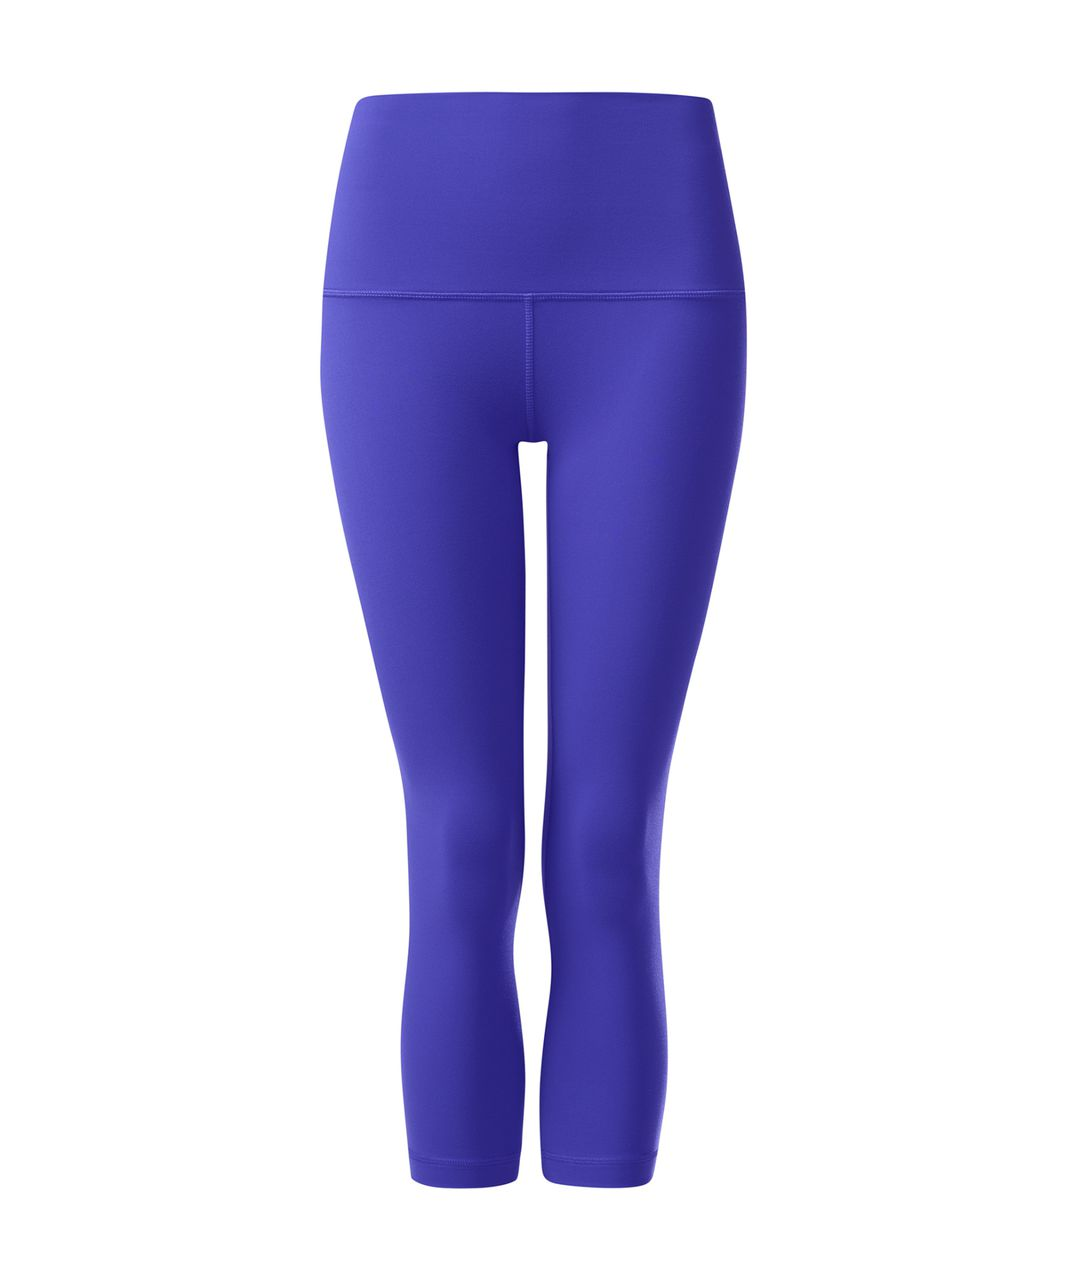 Lululemon Wunder Under Crop (Hi-Rise) - Super Purple